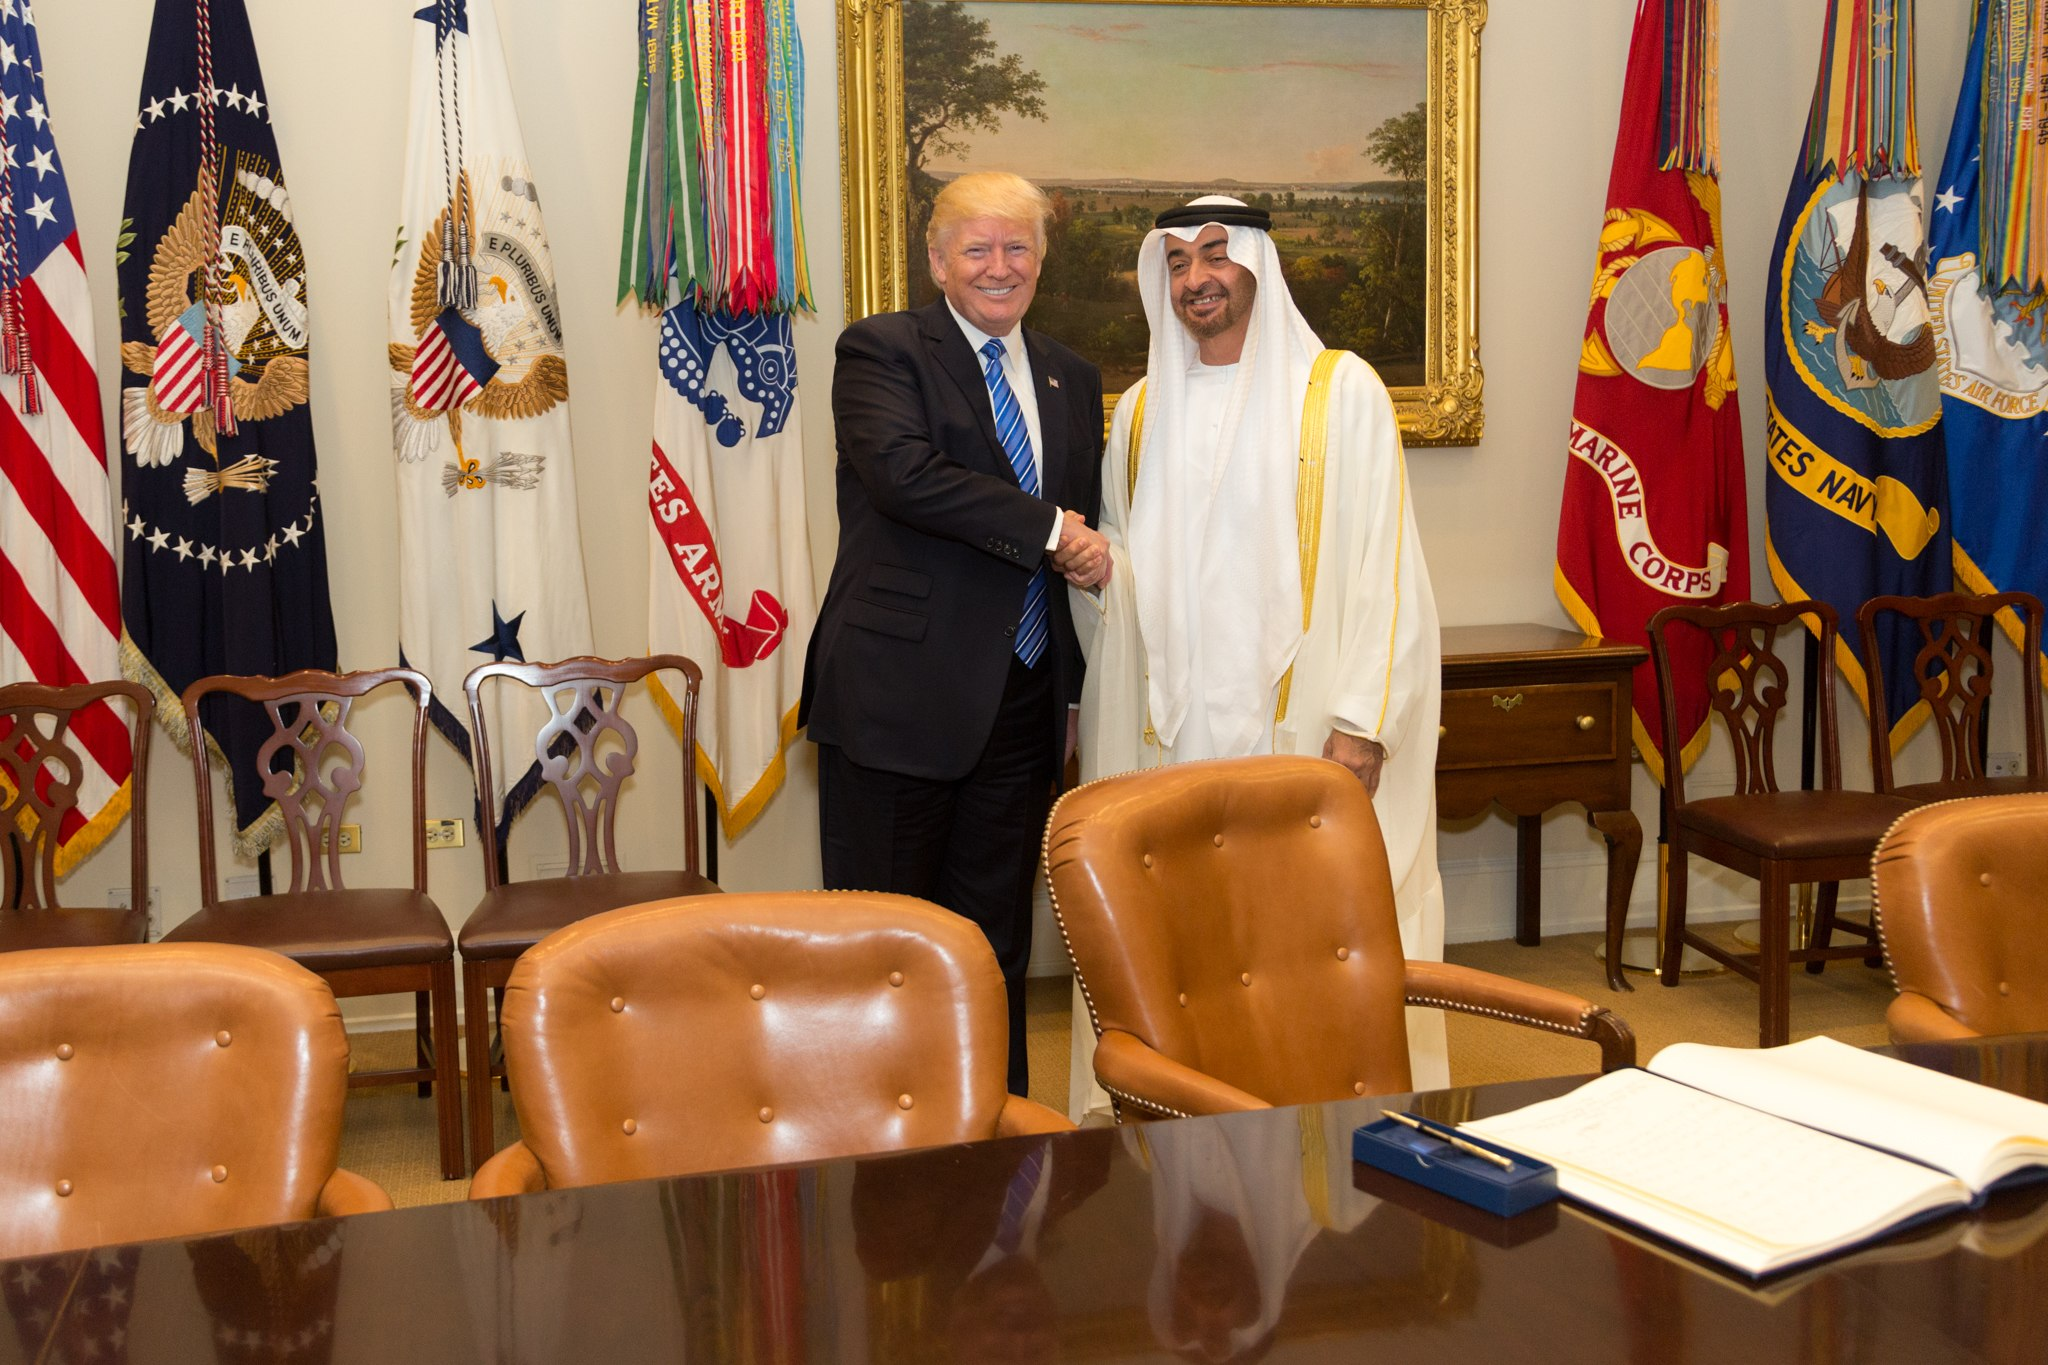 New UAE treatment promises relief from COVID-19